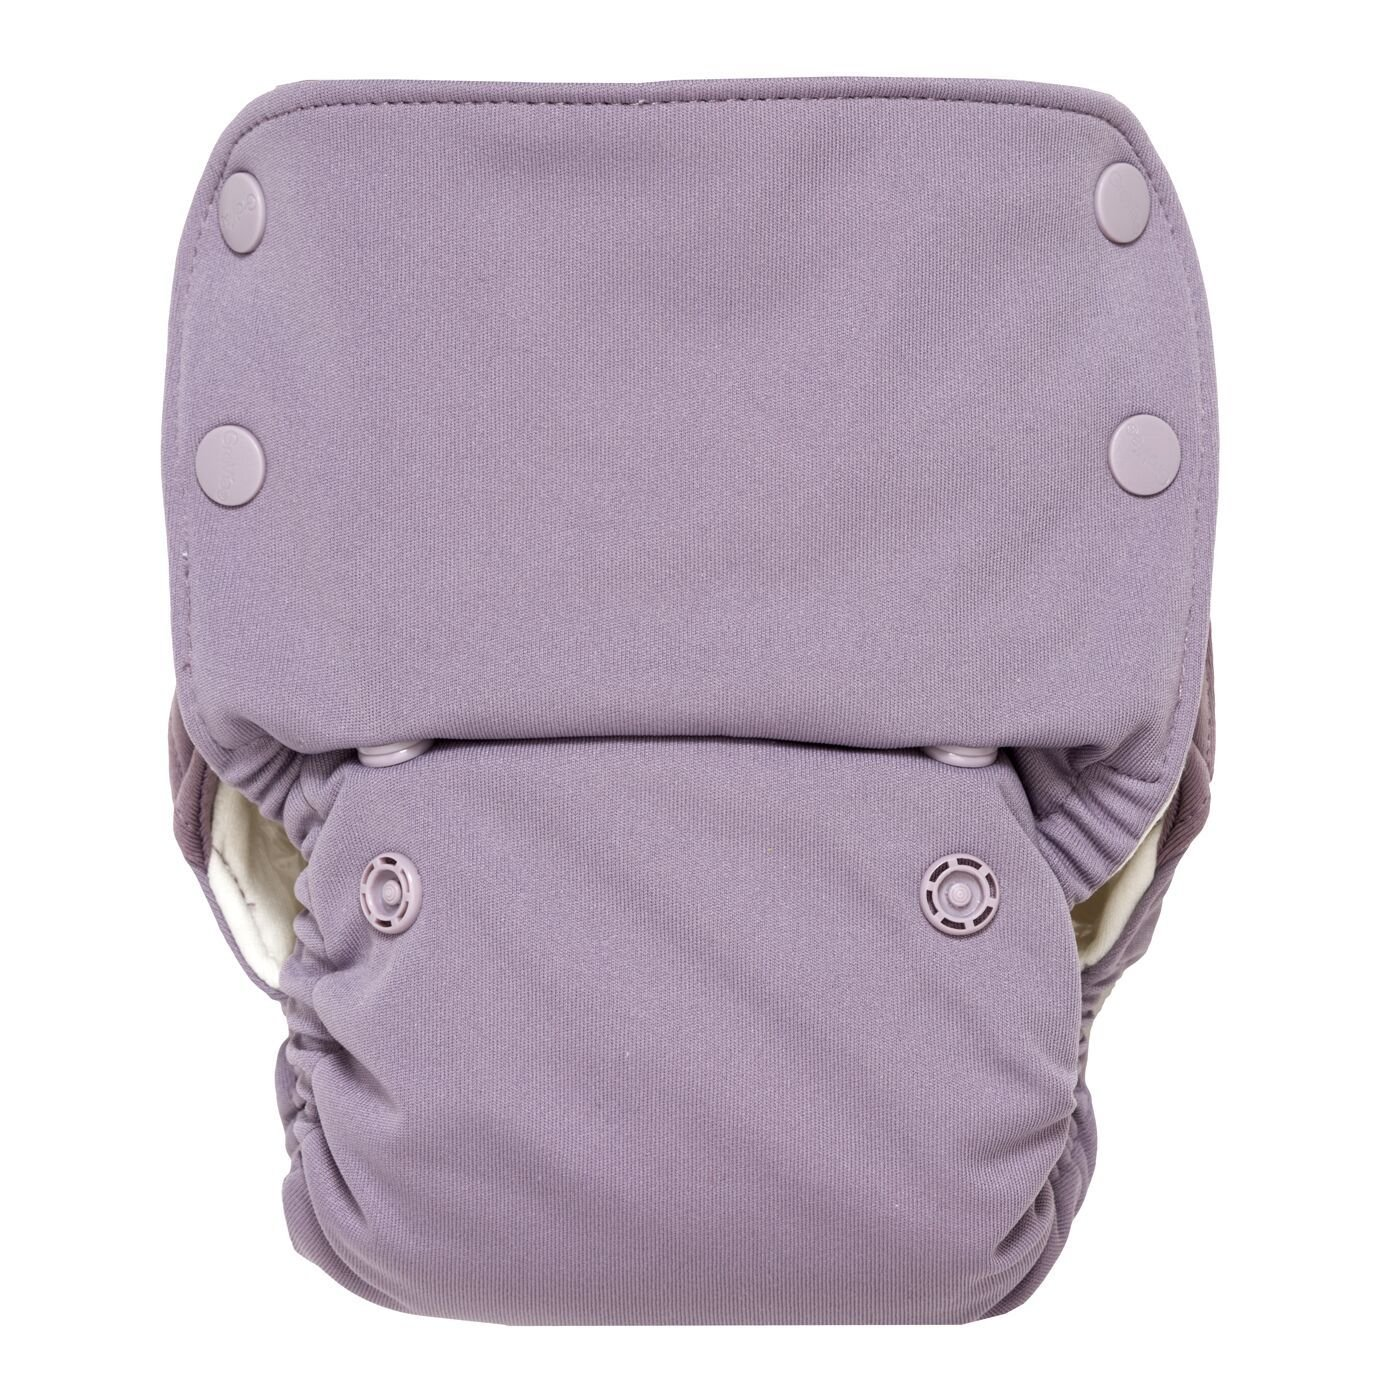 Grovia Hybrid Cloth Waterproof Diaper Cover Snap Shell One Size New Vanilla Pretty And Colorful Baby